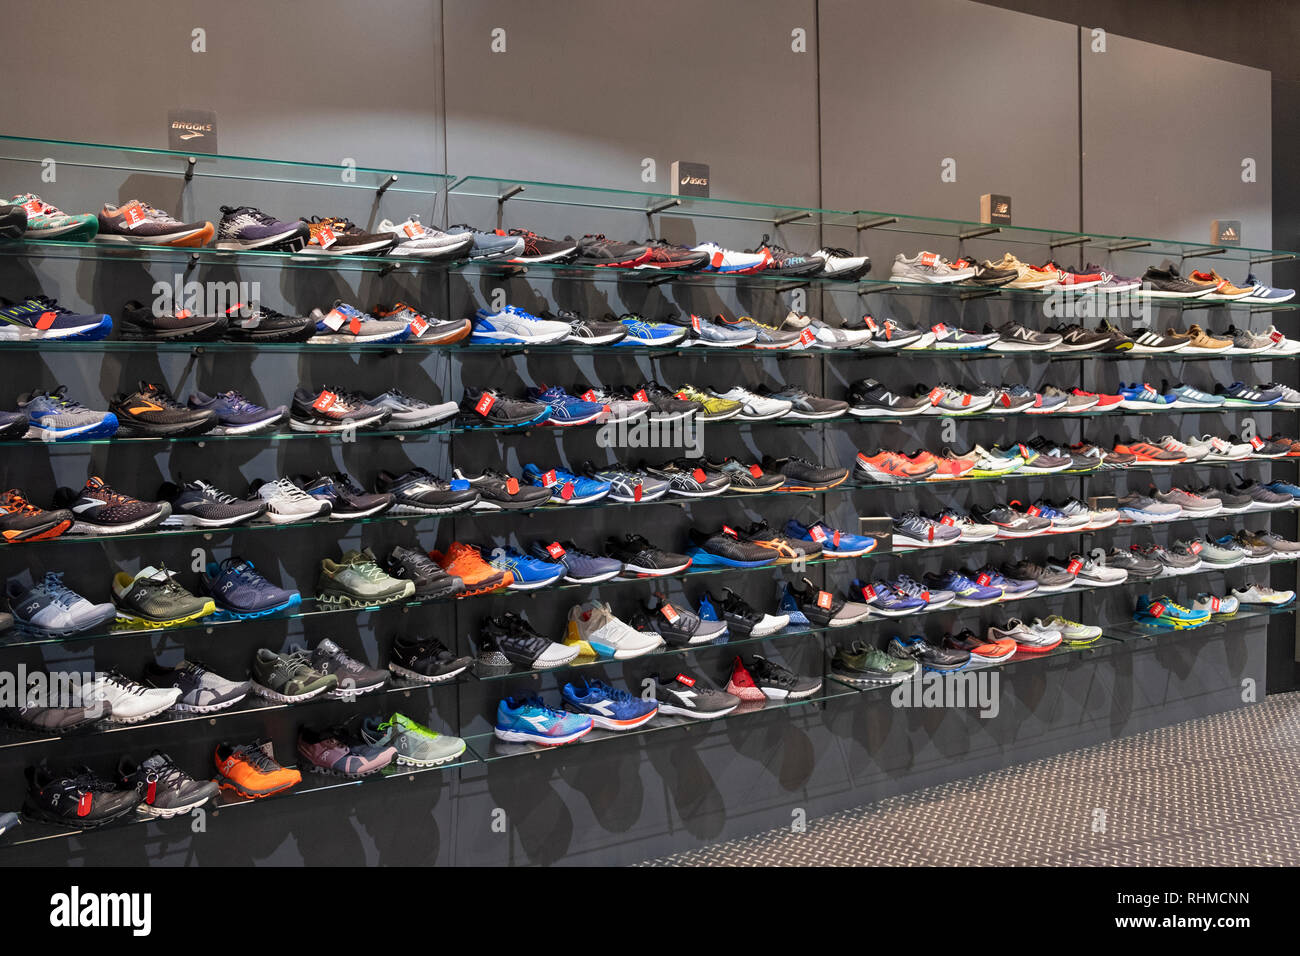 A display of running shoes for sale at